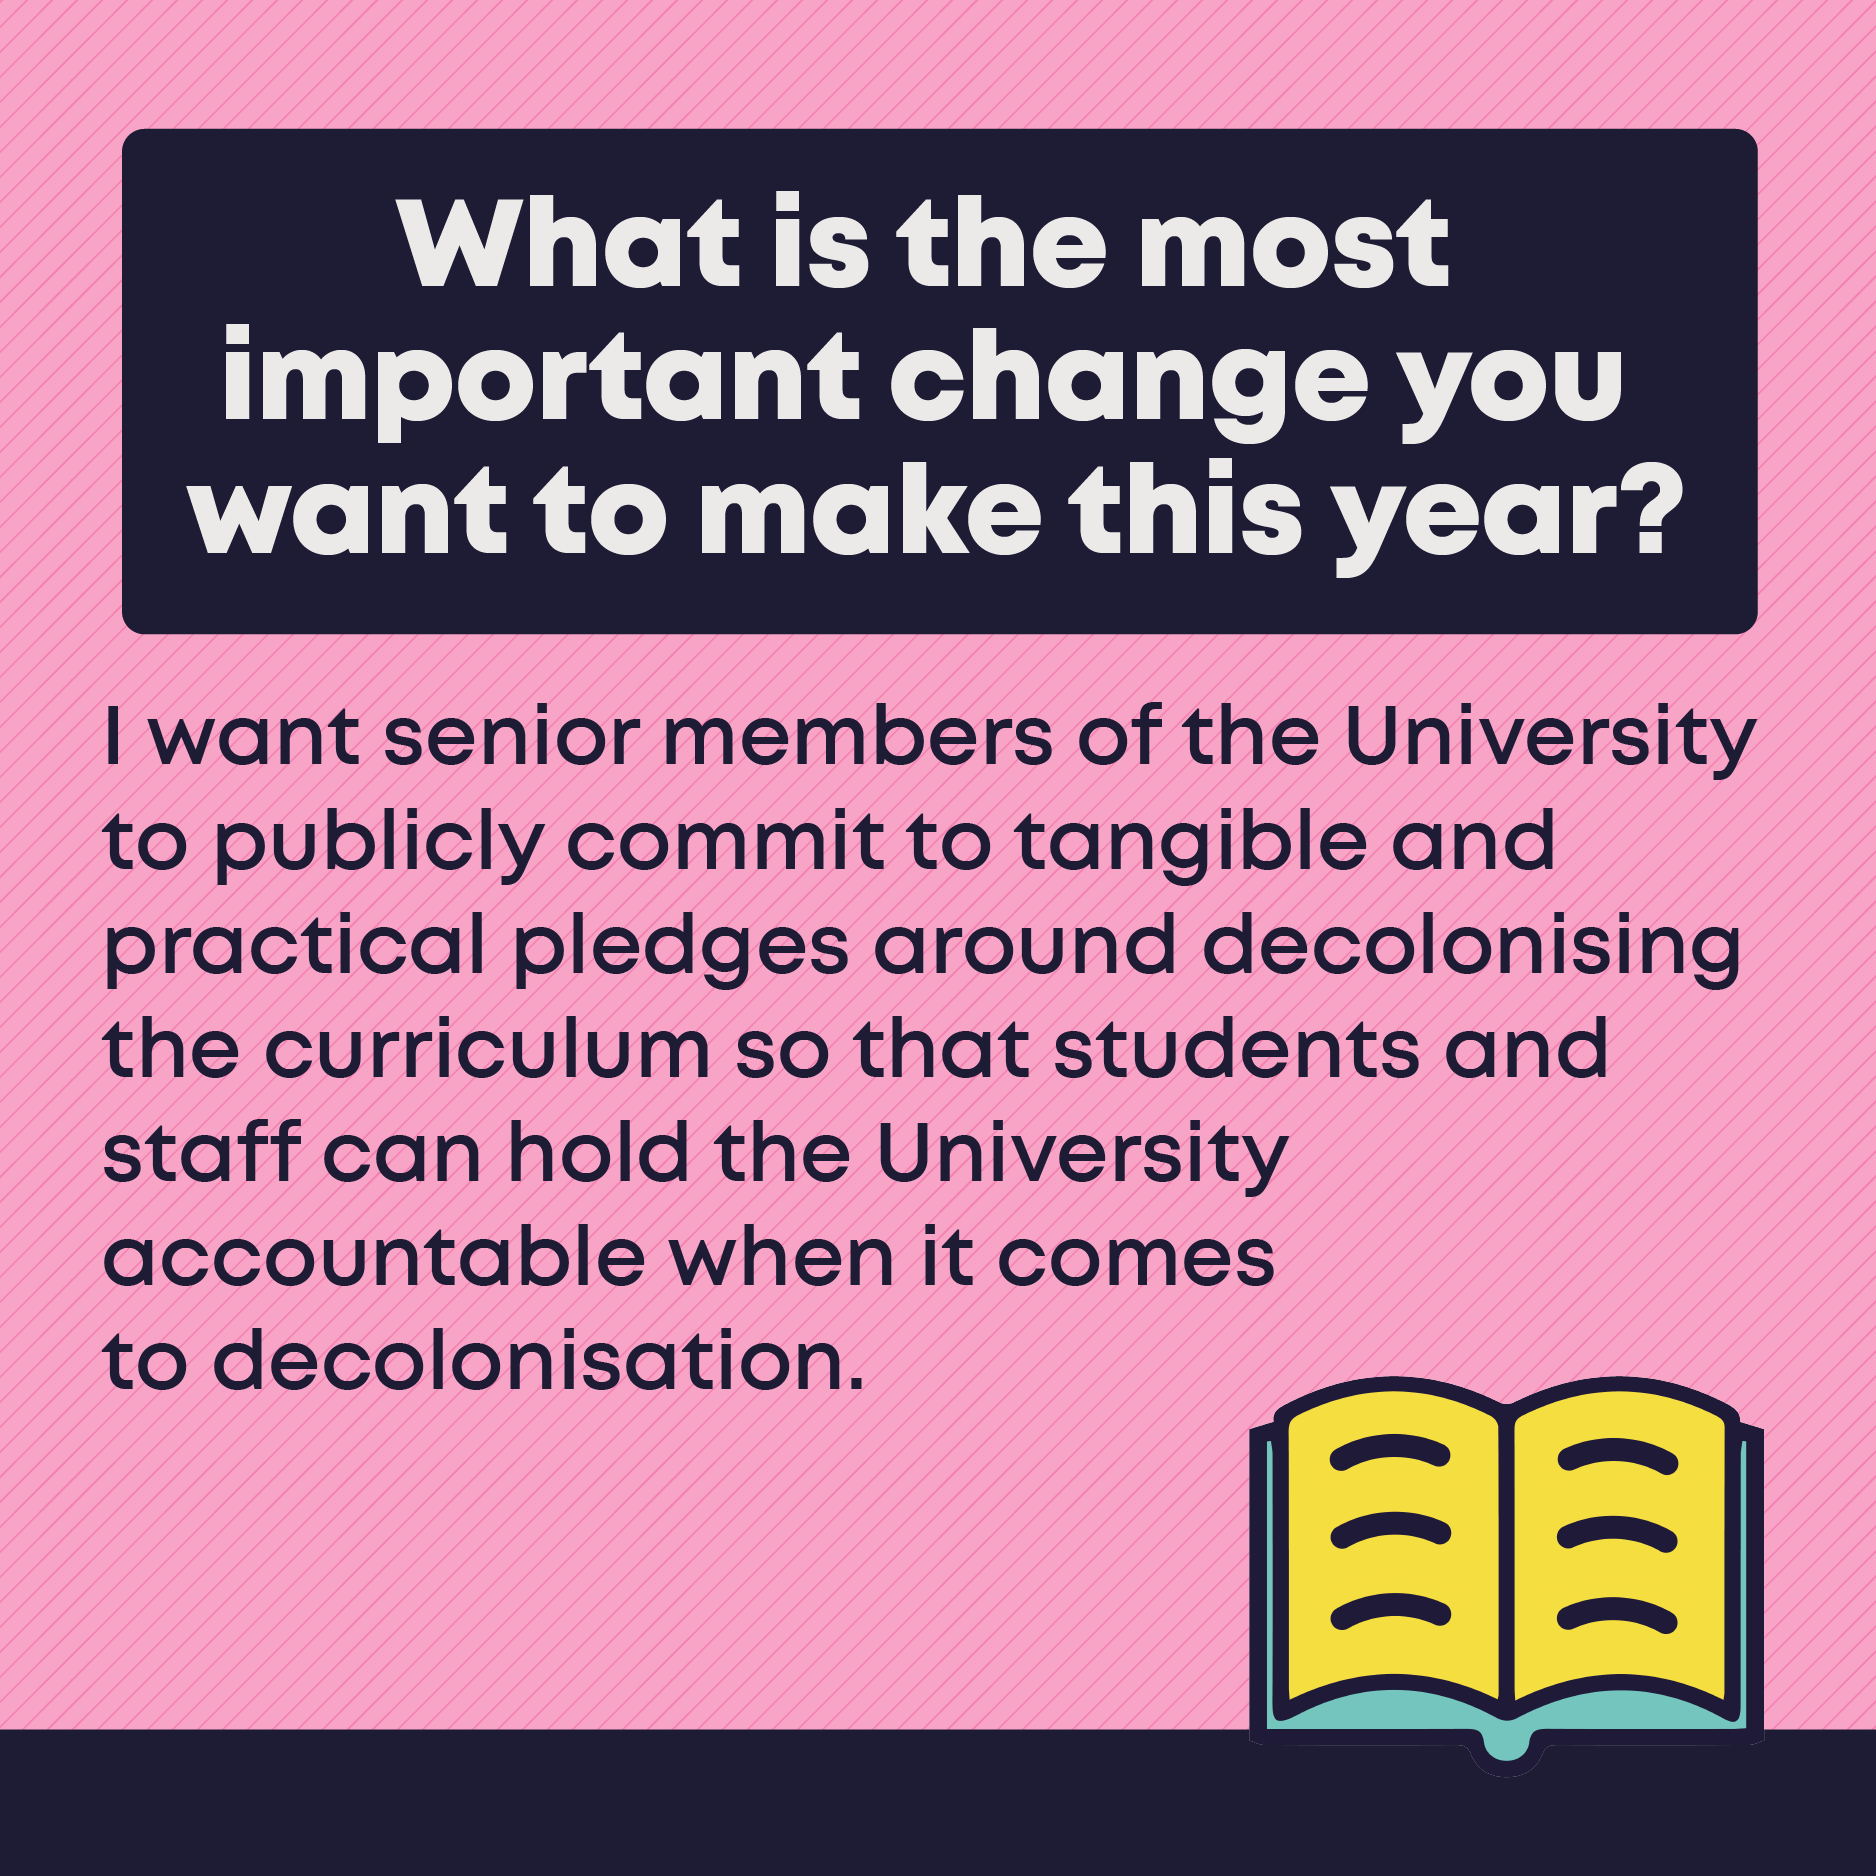 What is the most important change you  want to make this year? I want senior members of the University to publicly commit to tangible and practical pledges around decolonising the curriculum so that students and staff can hold the University accountable when it comes to decolonisation.